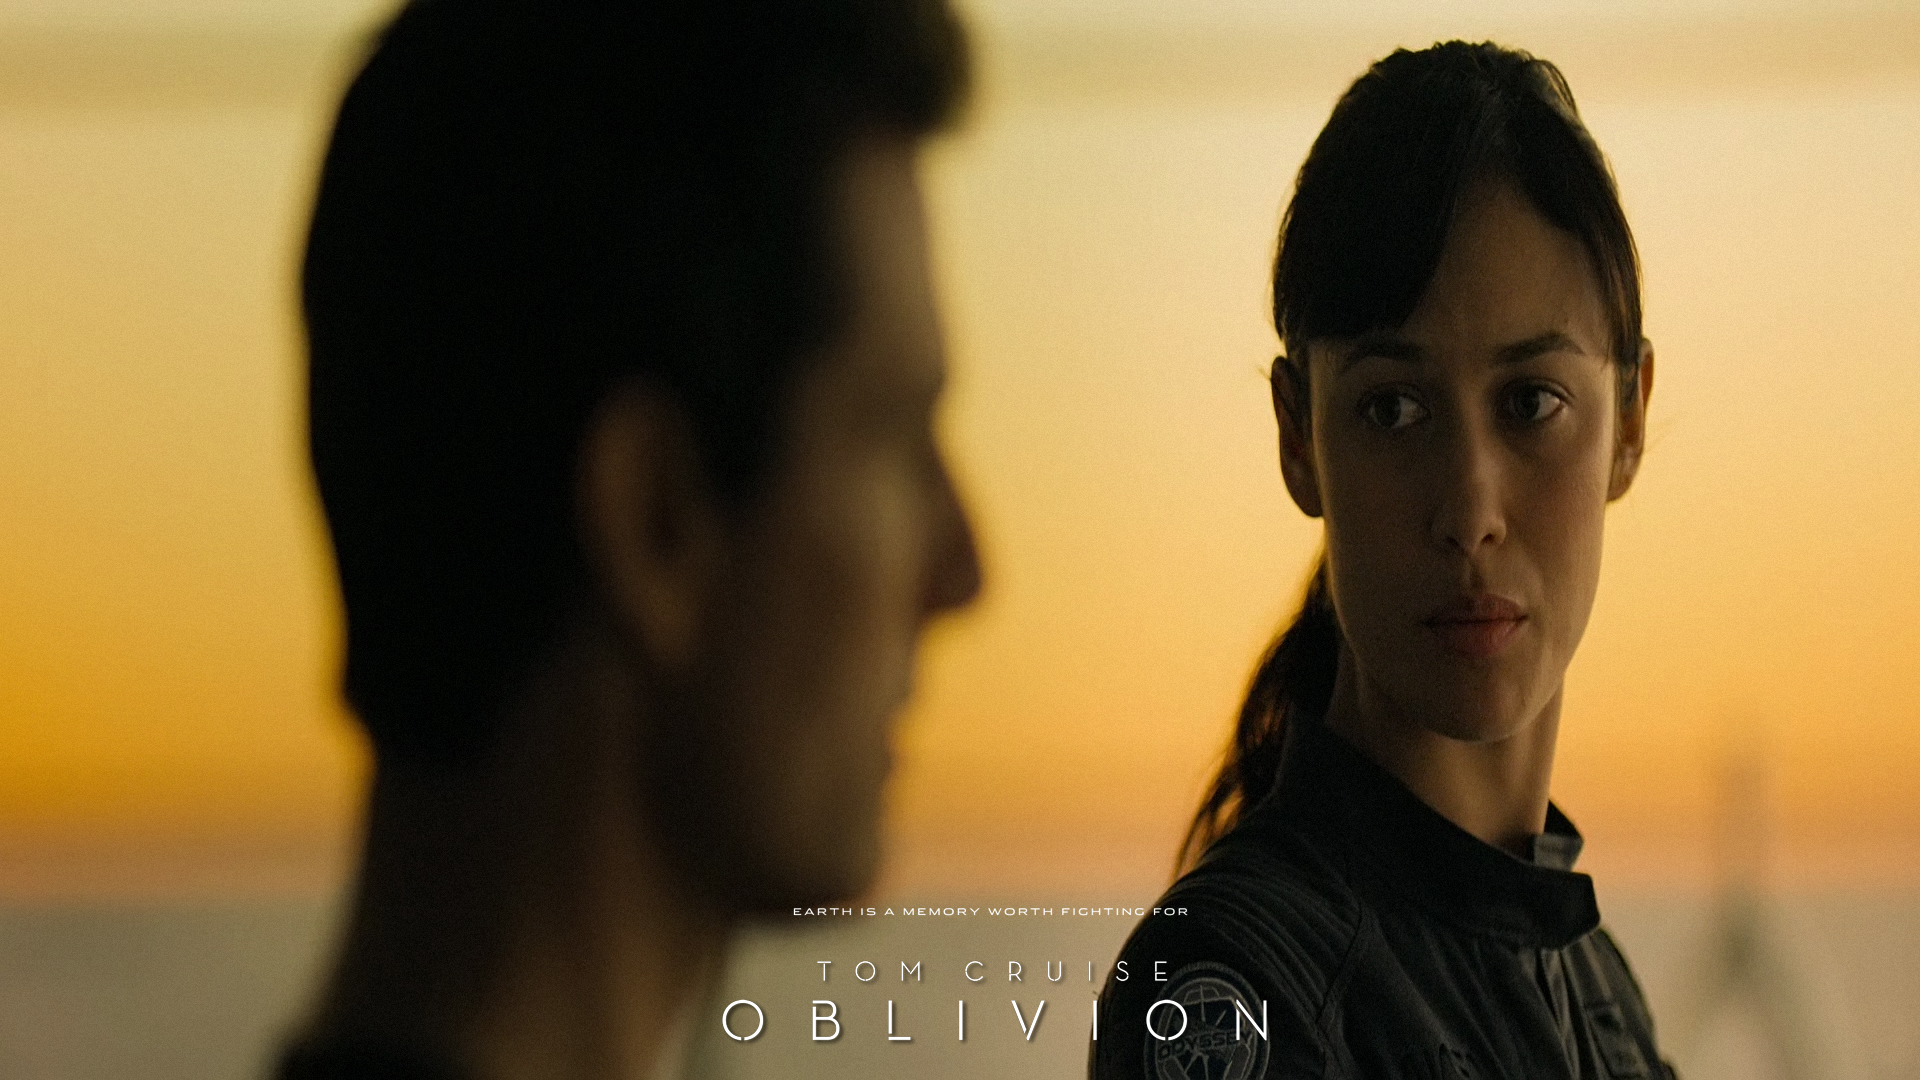 20 HD wallpapersscreenshots of Oblivion with Tom Cruise Movie 1920x1080